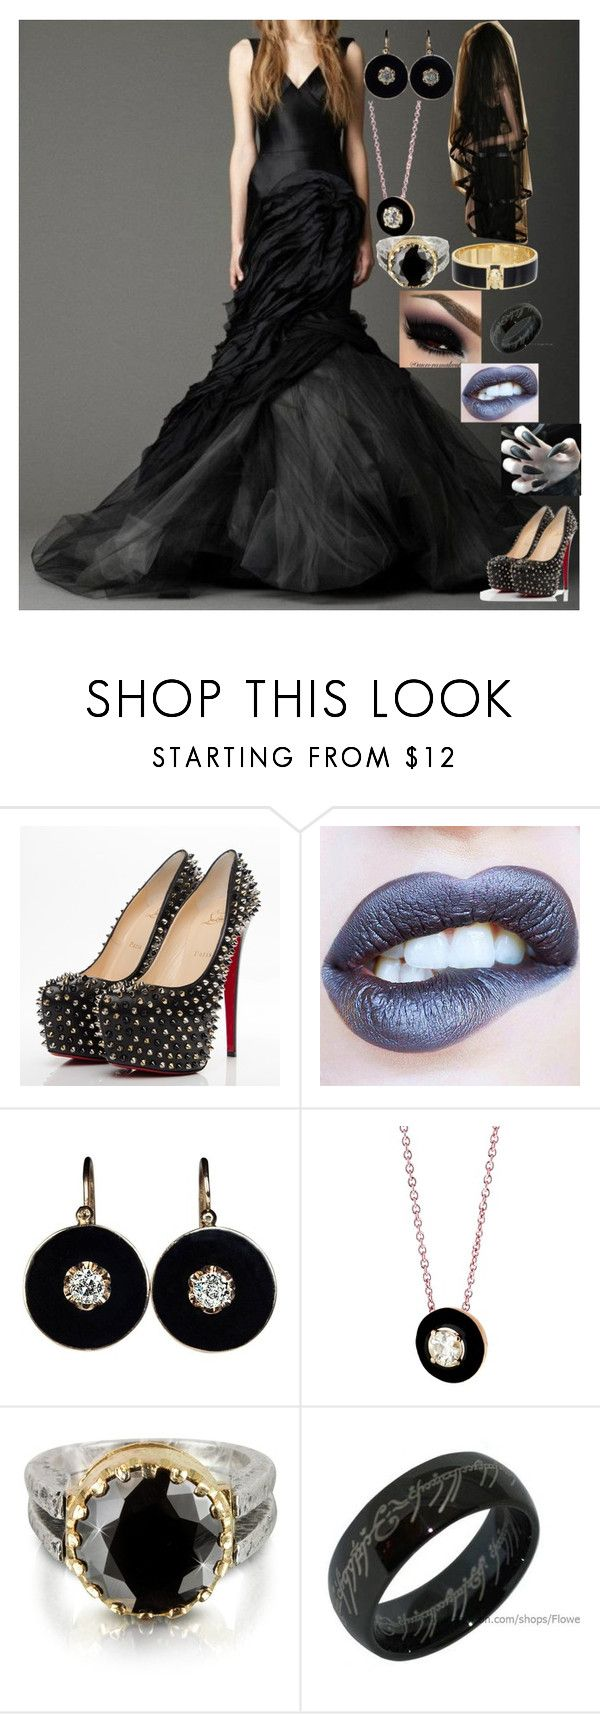 """""""Daisy 2"""" by arya-lynn ❤ liked on Polyvore featuring Vera Wang, Christian Louboutin, Selim Mouzannar, Tryò and Alexander McQueen"""